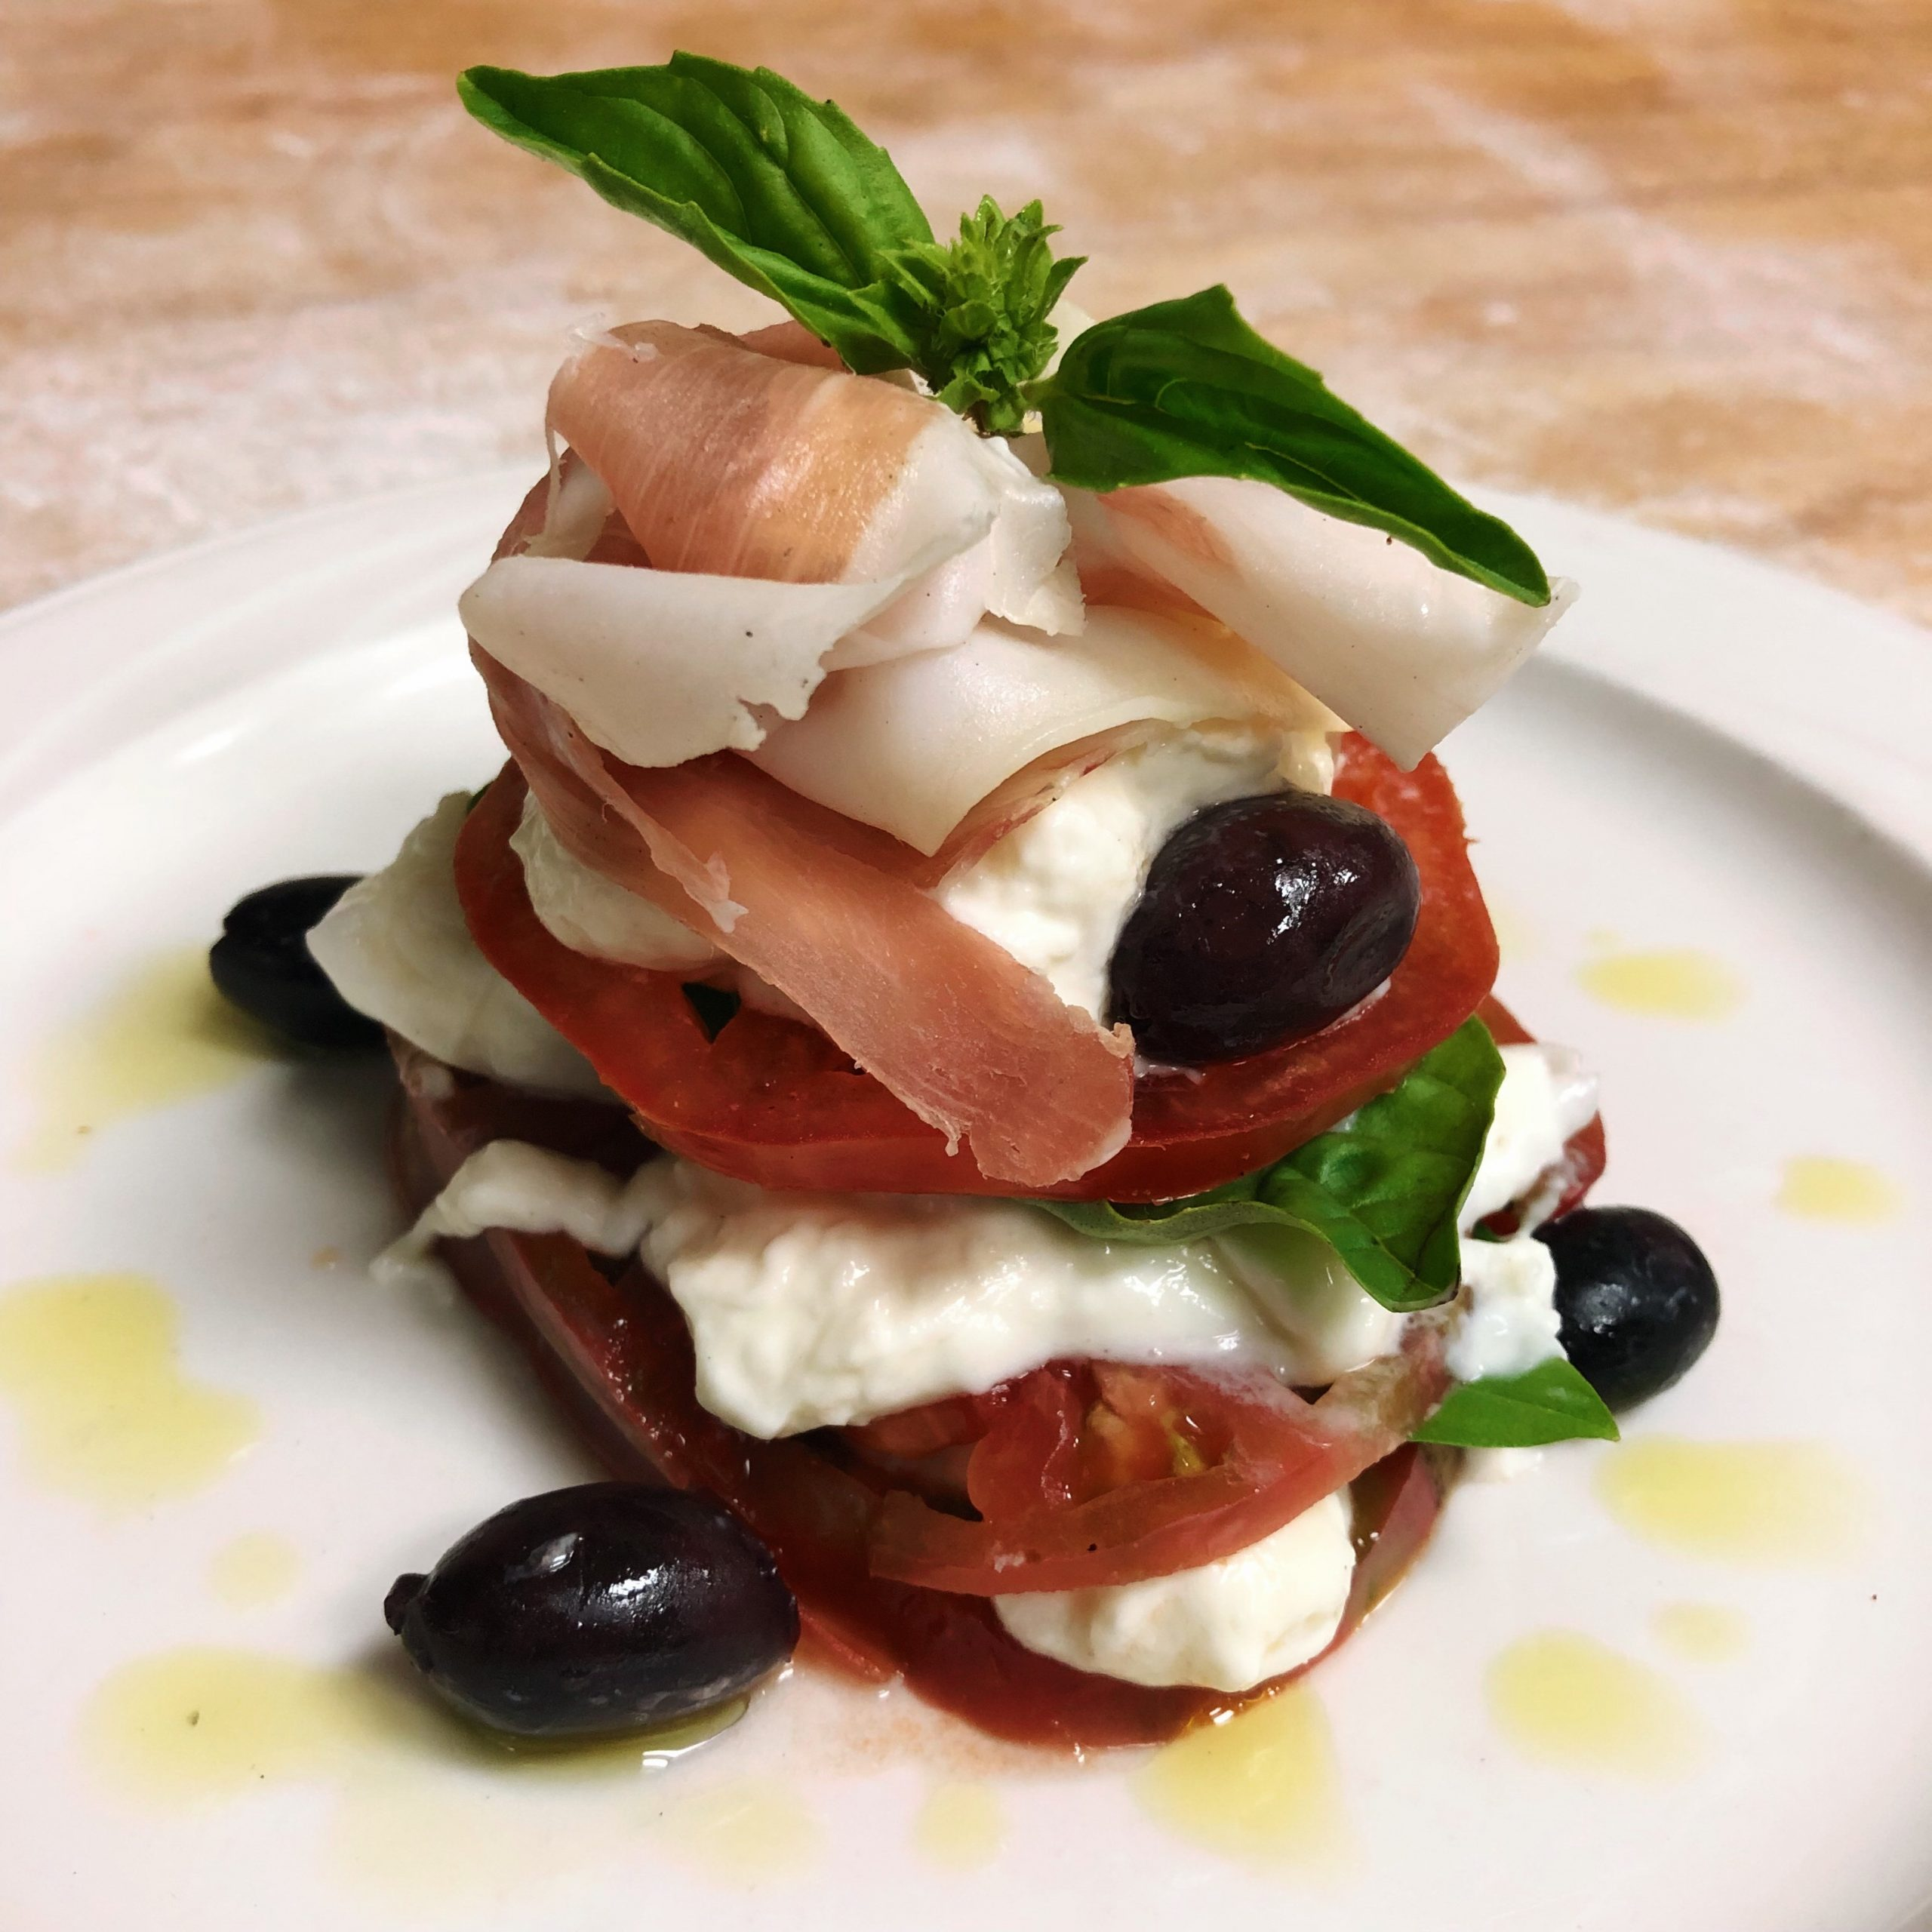 Burrata cheese layered with heirloom tomatoes, basil, prociutto, and served with mixed olives and olive oil